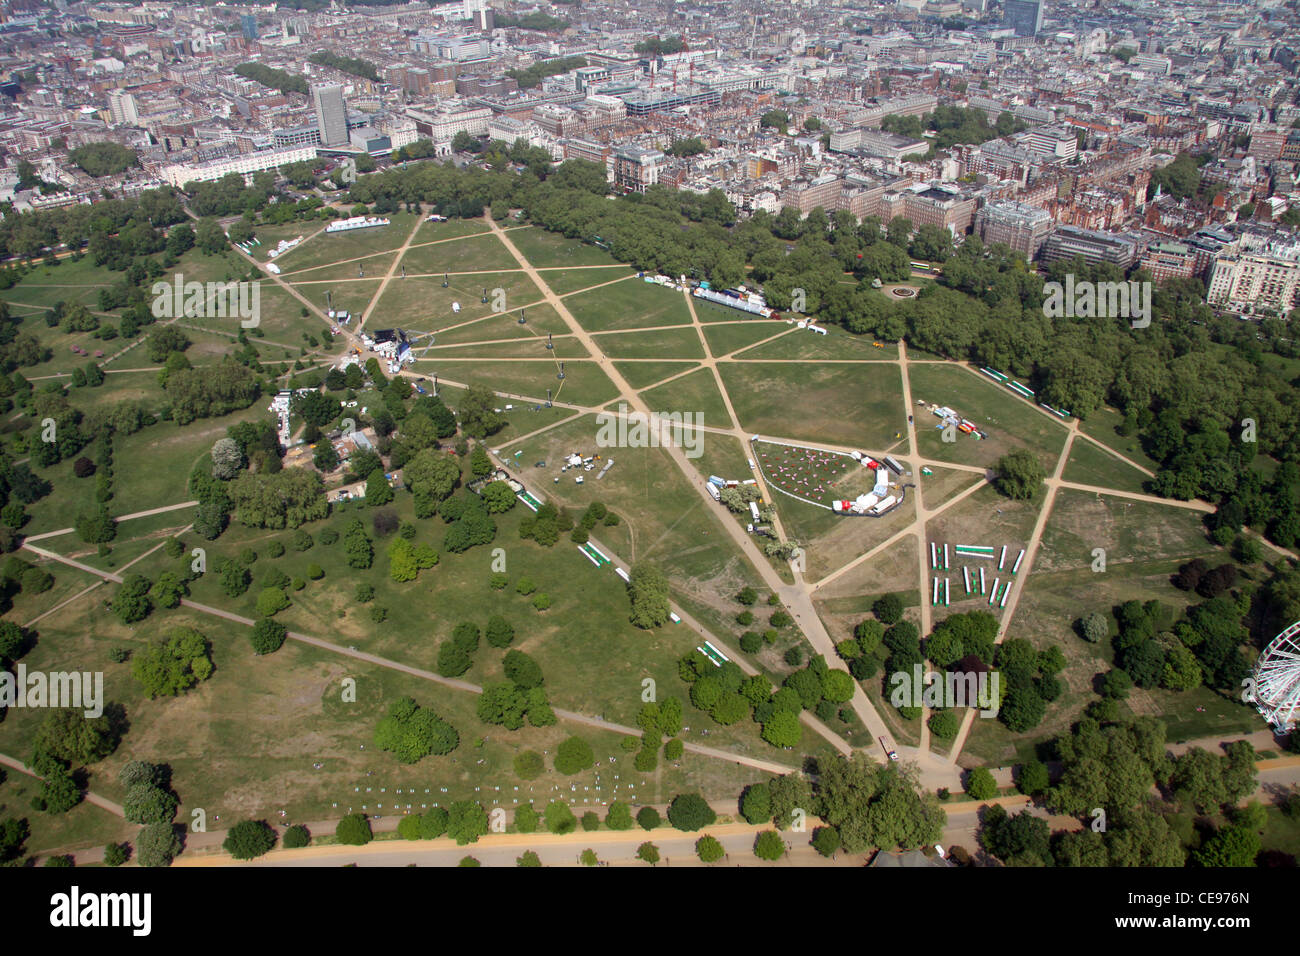 Aerial image of Hyde Park, London W2 - Stock Image